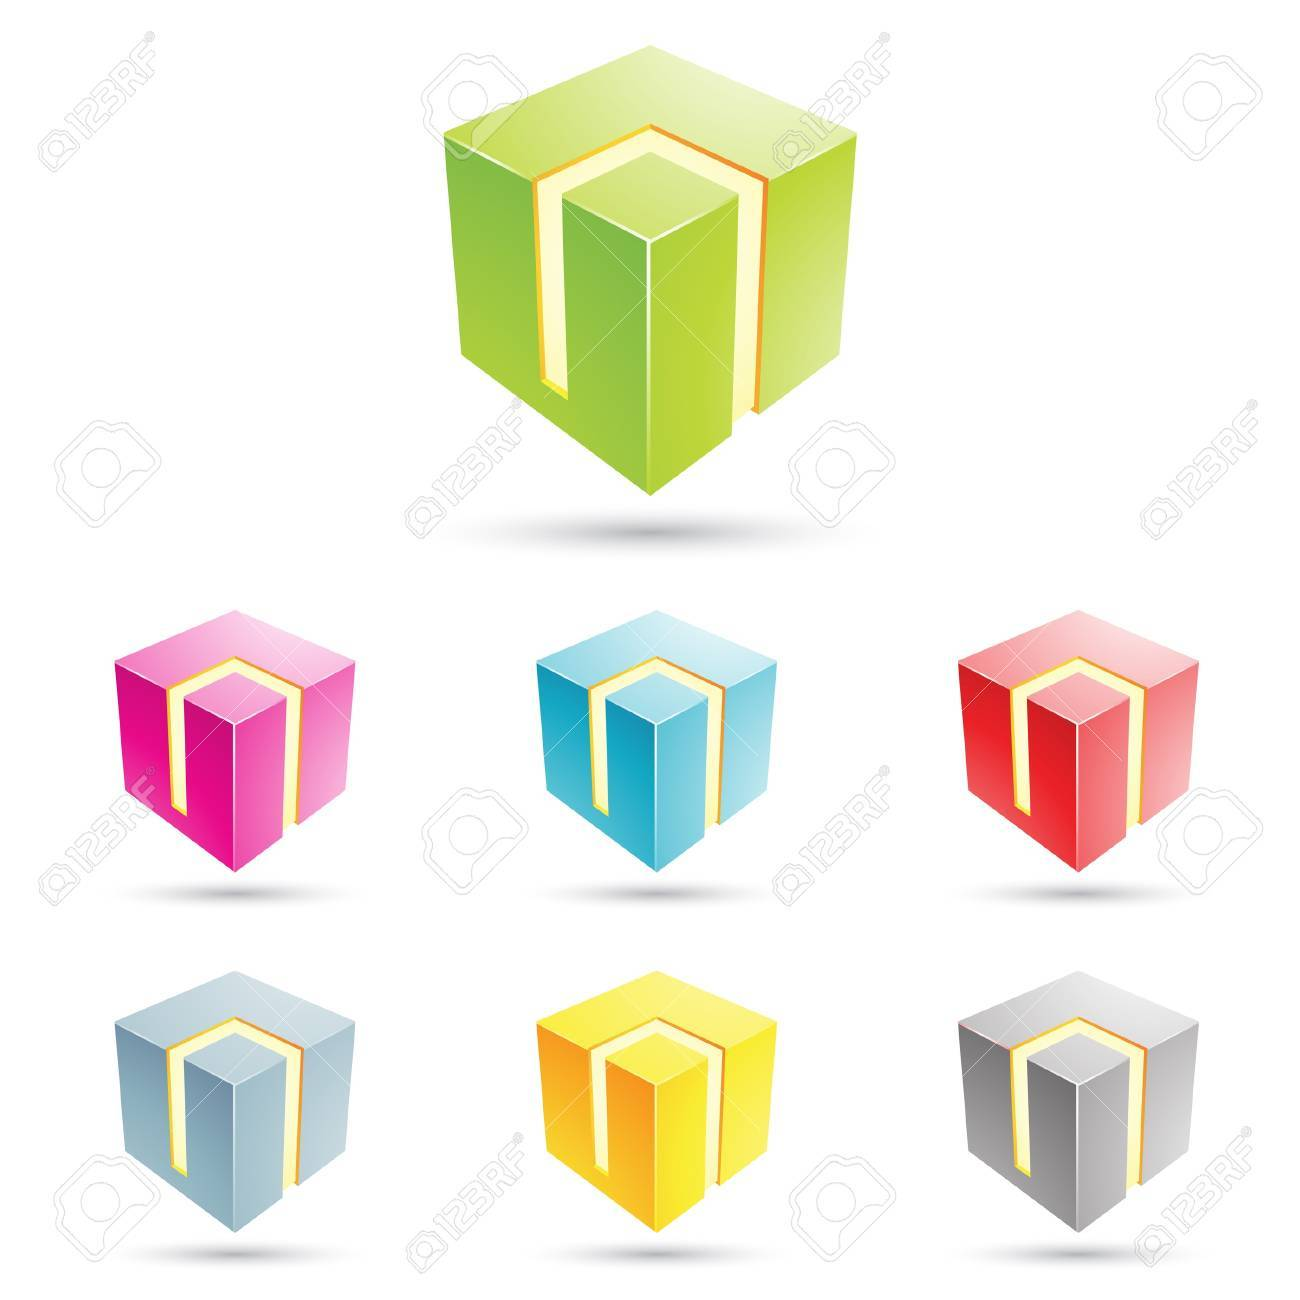 eps vector illustration of colorful cubical icons Stock Vector - 22029196